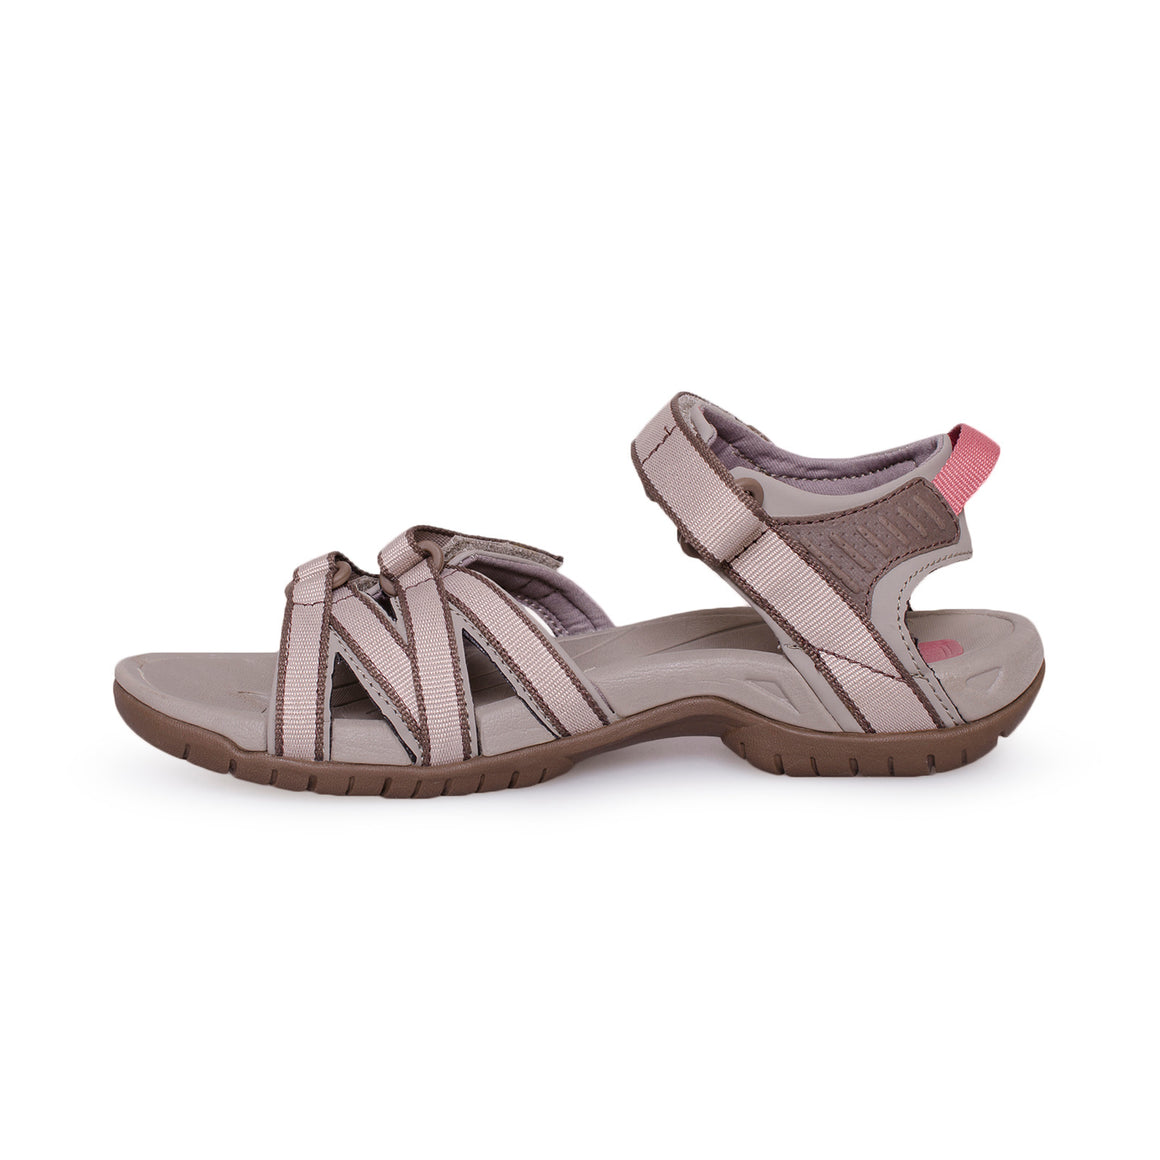 Teva Tirra Simply Taupe Sandals - Women's